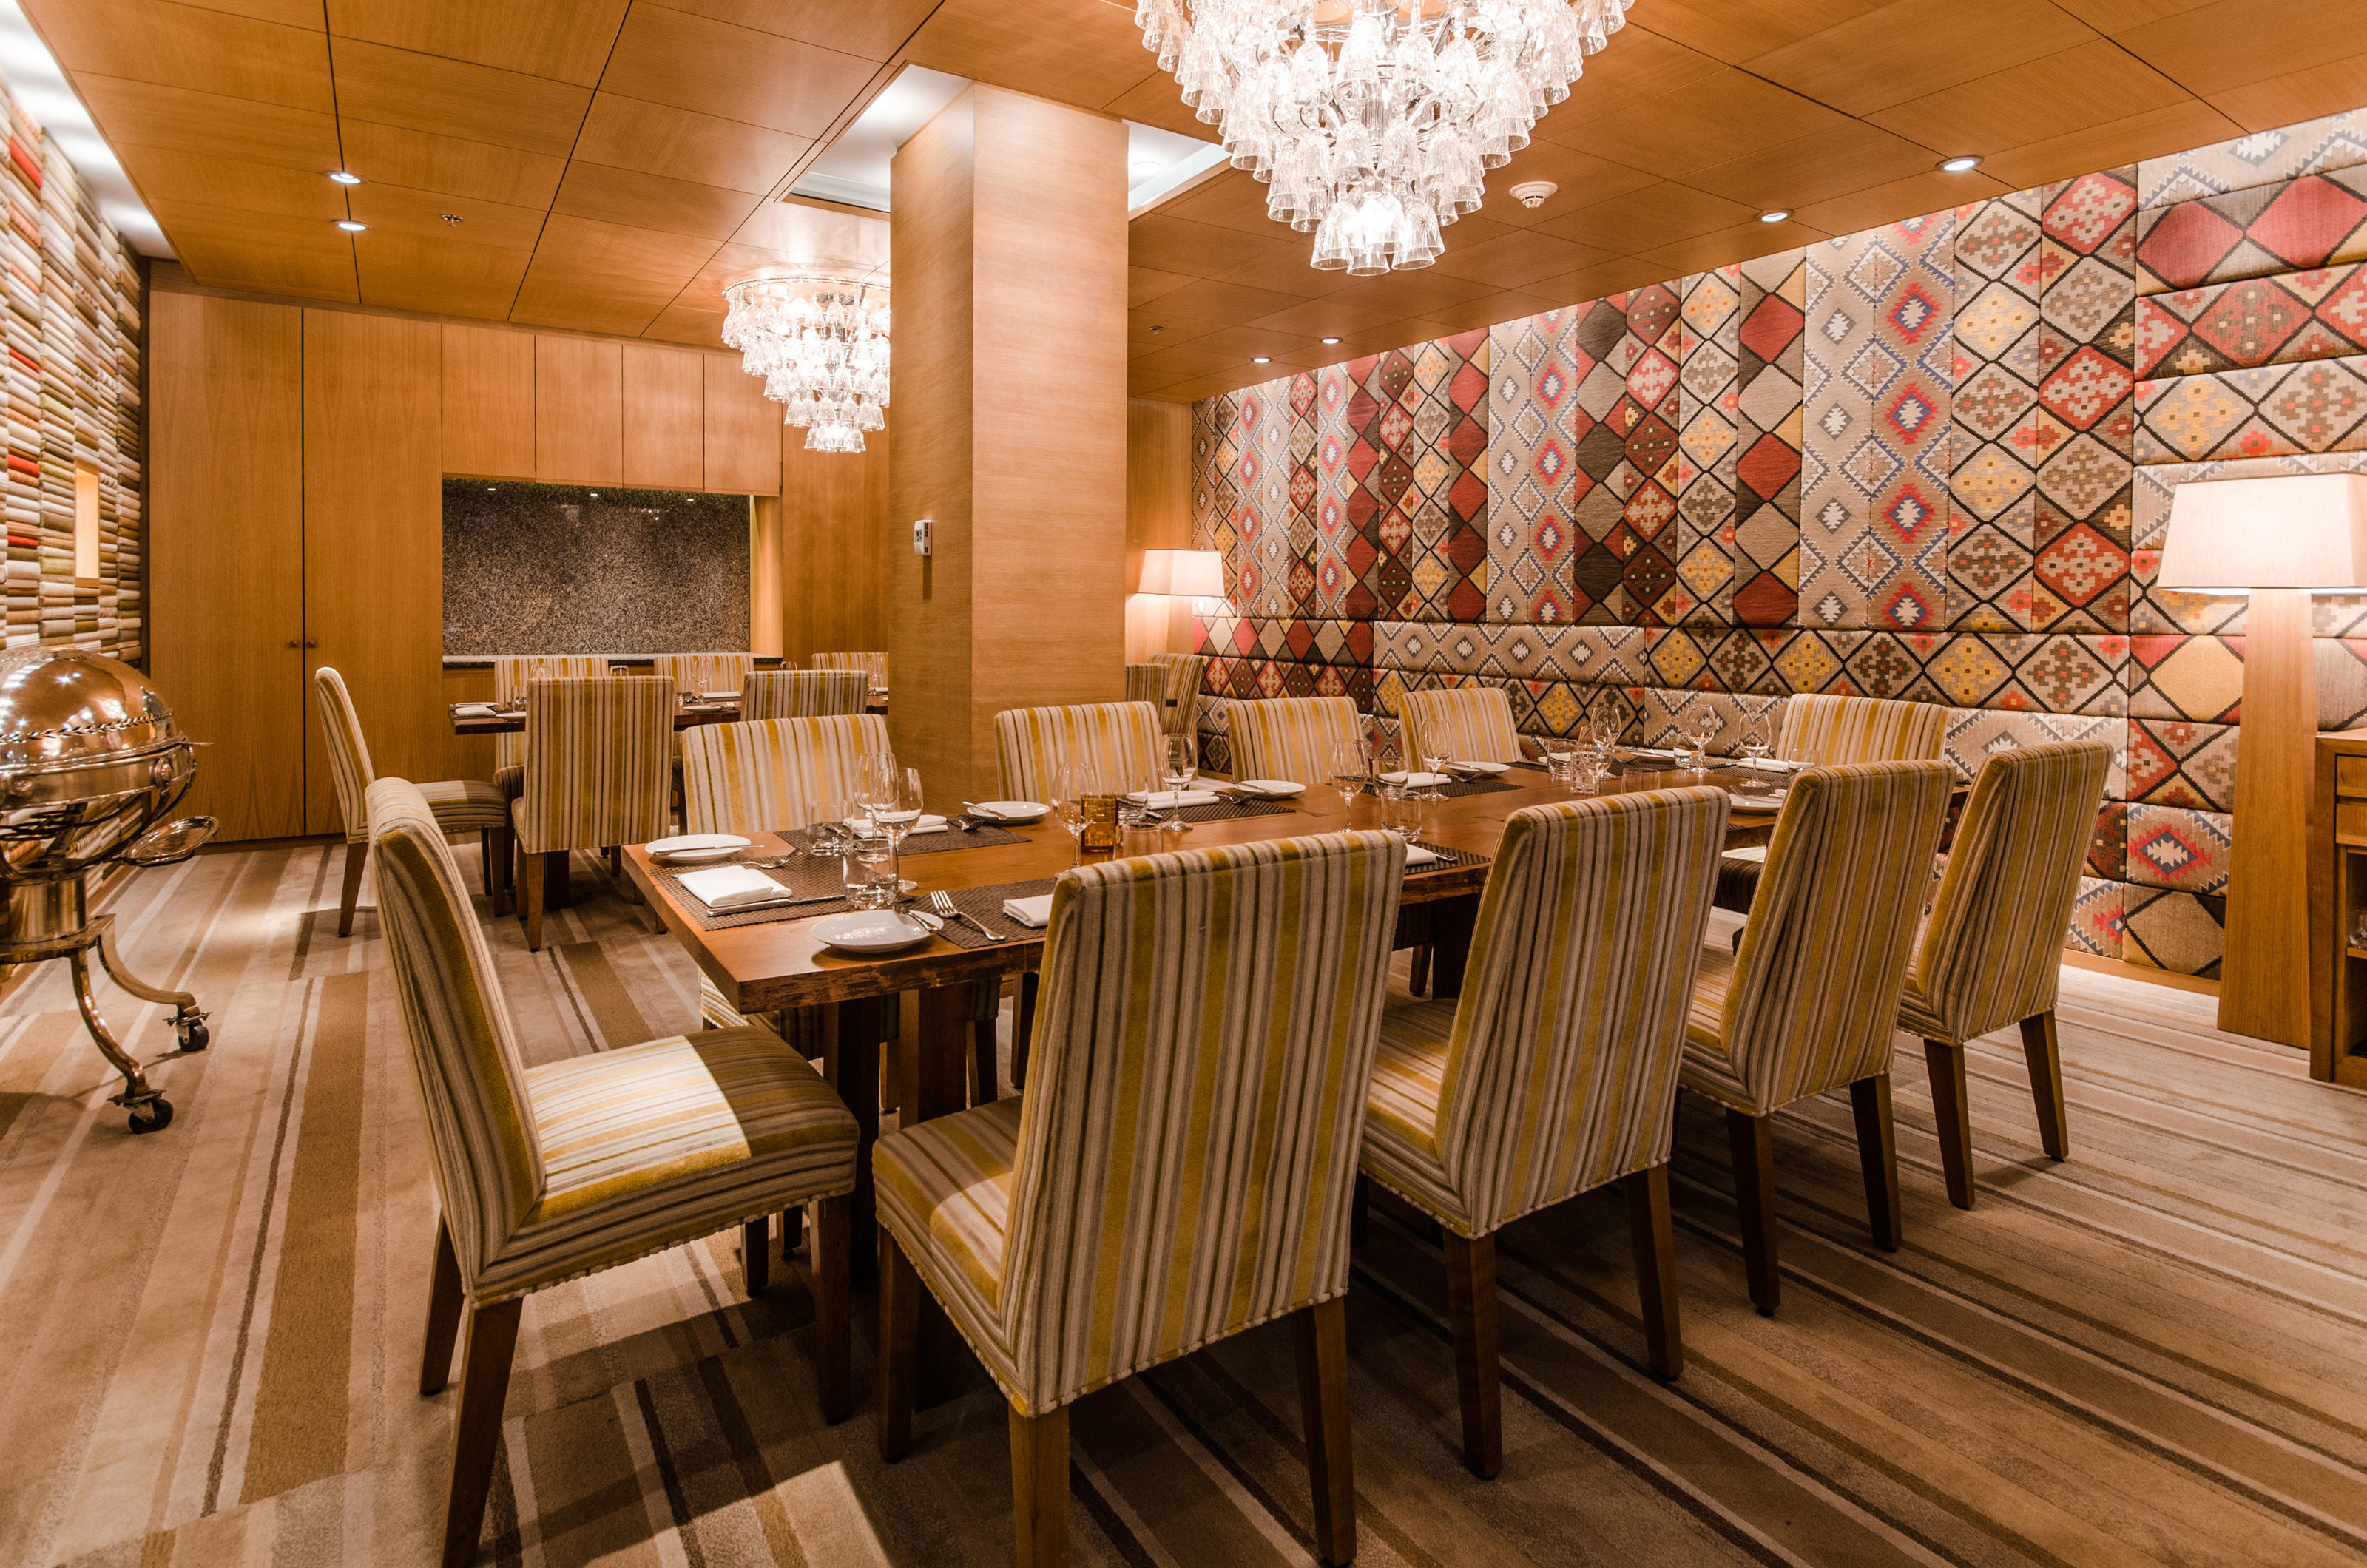 The Ritz-Carlton, Montreal à Montreal: The brainchild of world-renowned Chef Daniel Boulud, Maison Boulud reimagines classic French cuisine with local ingredients and artisanal Quebecois products. Begin in the lounge for a cocktail or a glass of wine, and then sit down at any of its romantic dining spaces: the outdoor terrace overlooking Montreal's Sherbrooke Street, the ambient greenhouse or the dining room for views of the open kitchen. Private dining is also available.